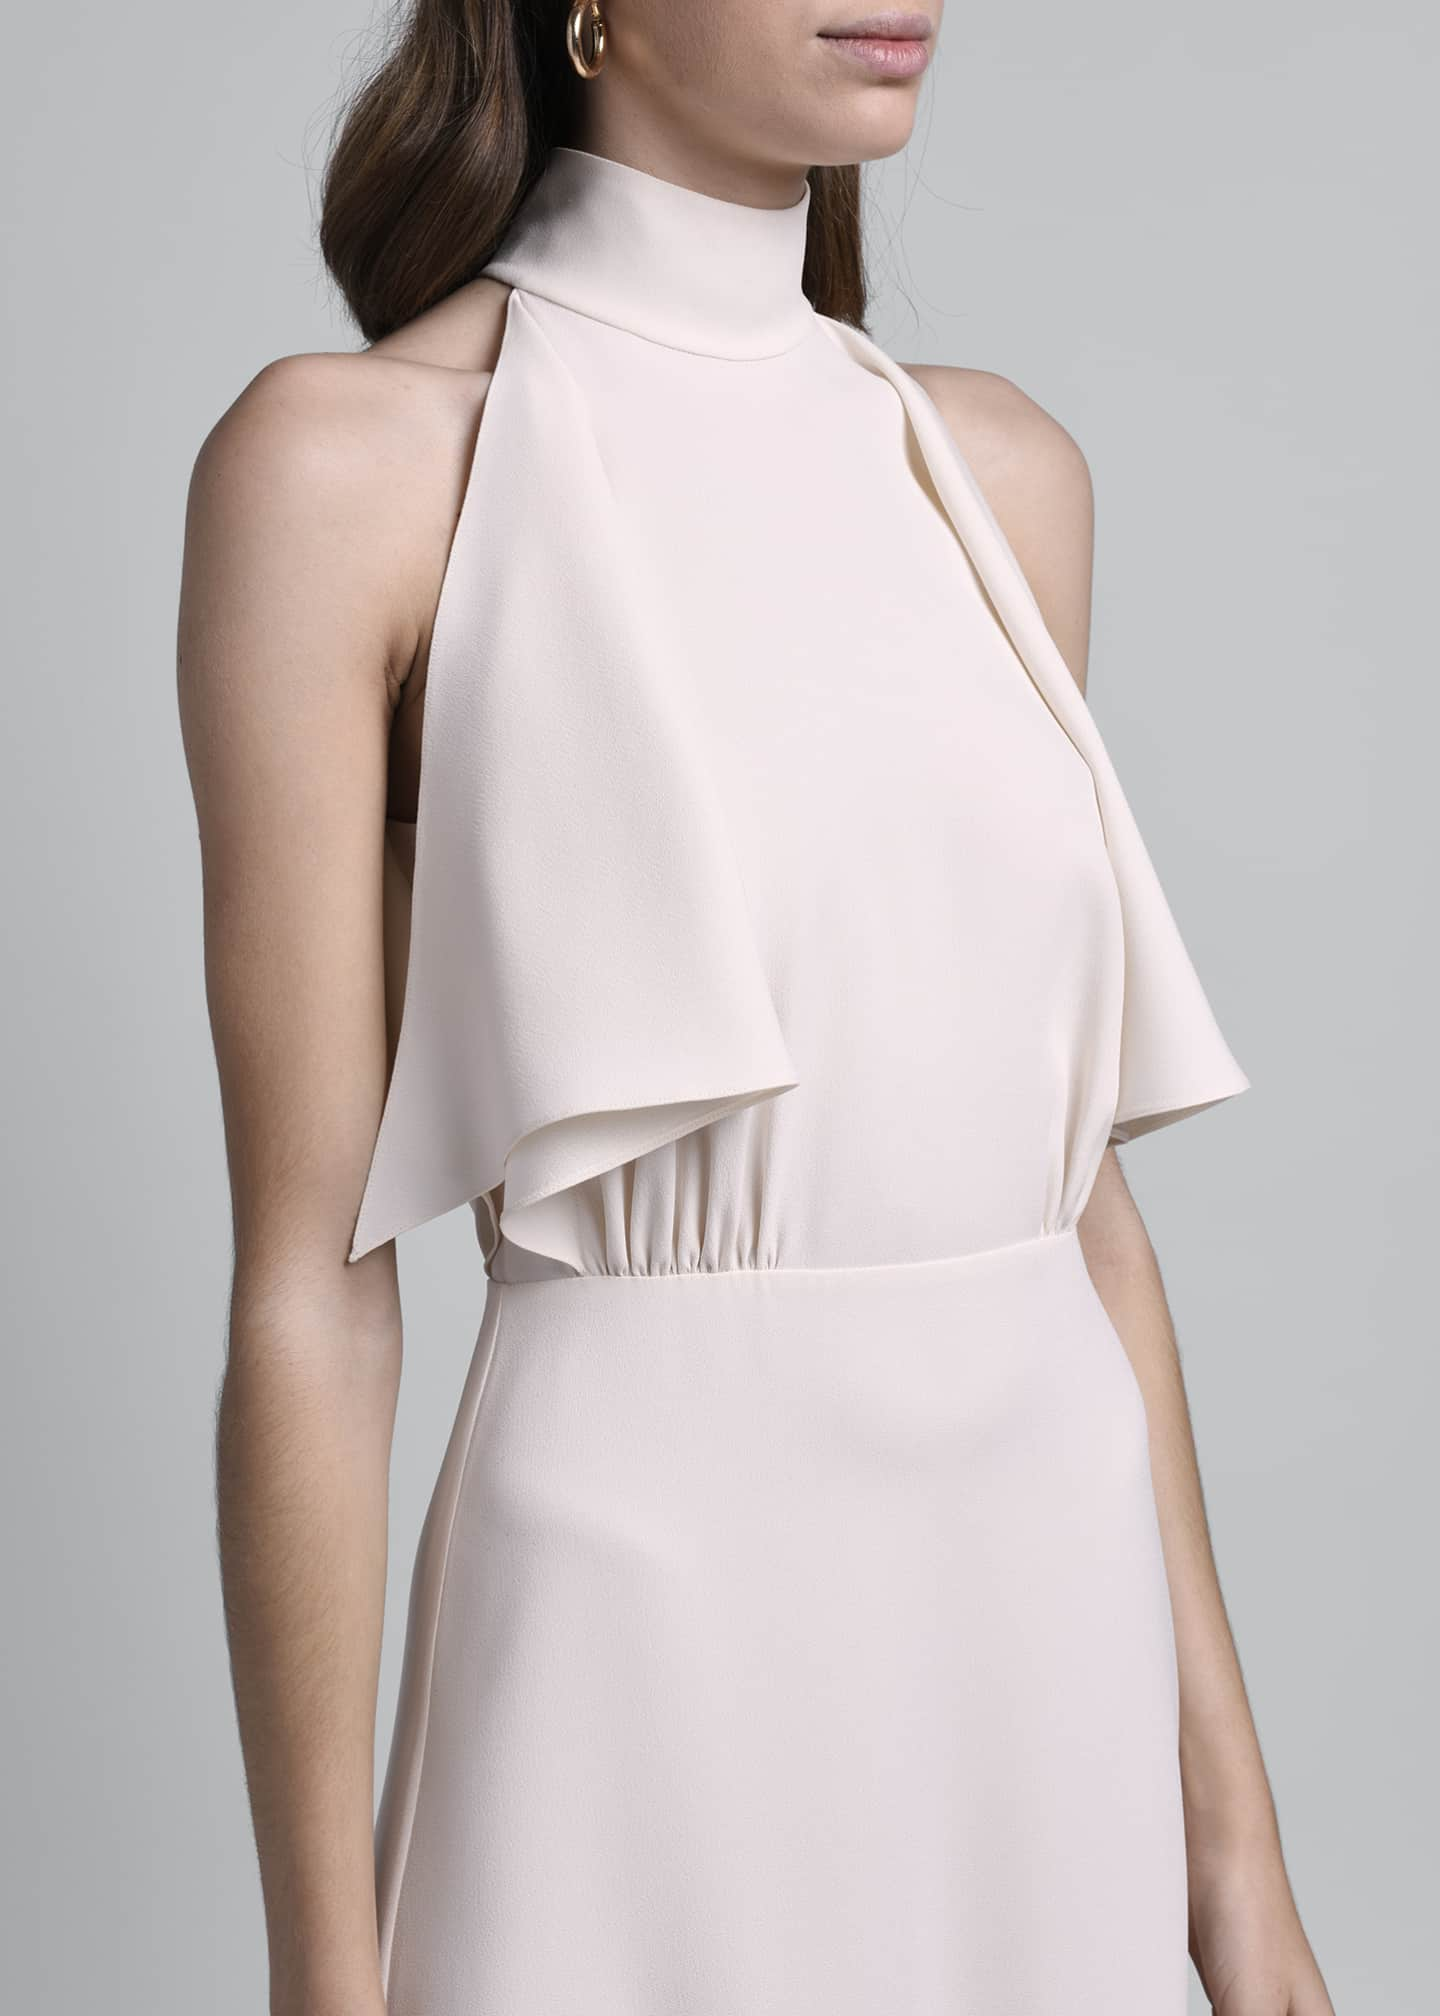 Image 3 of 3: Sable Raso High-Neck Sleeveless Dress